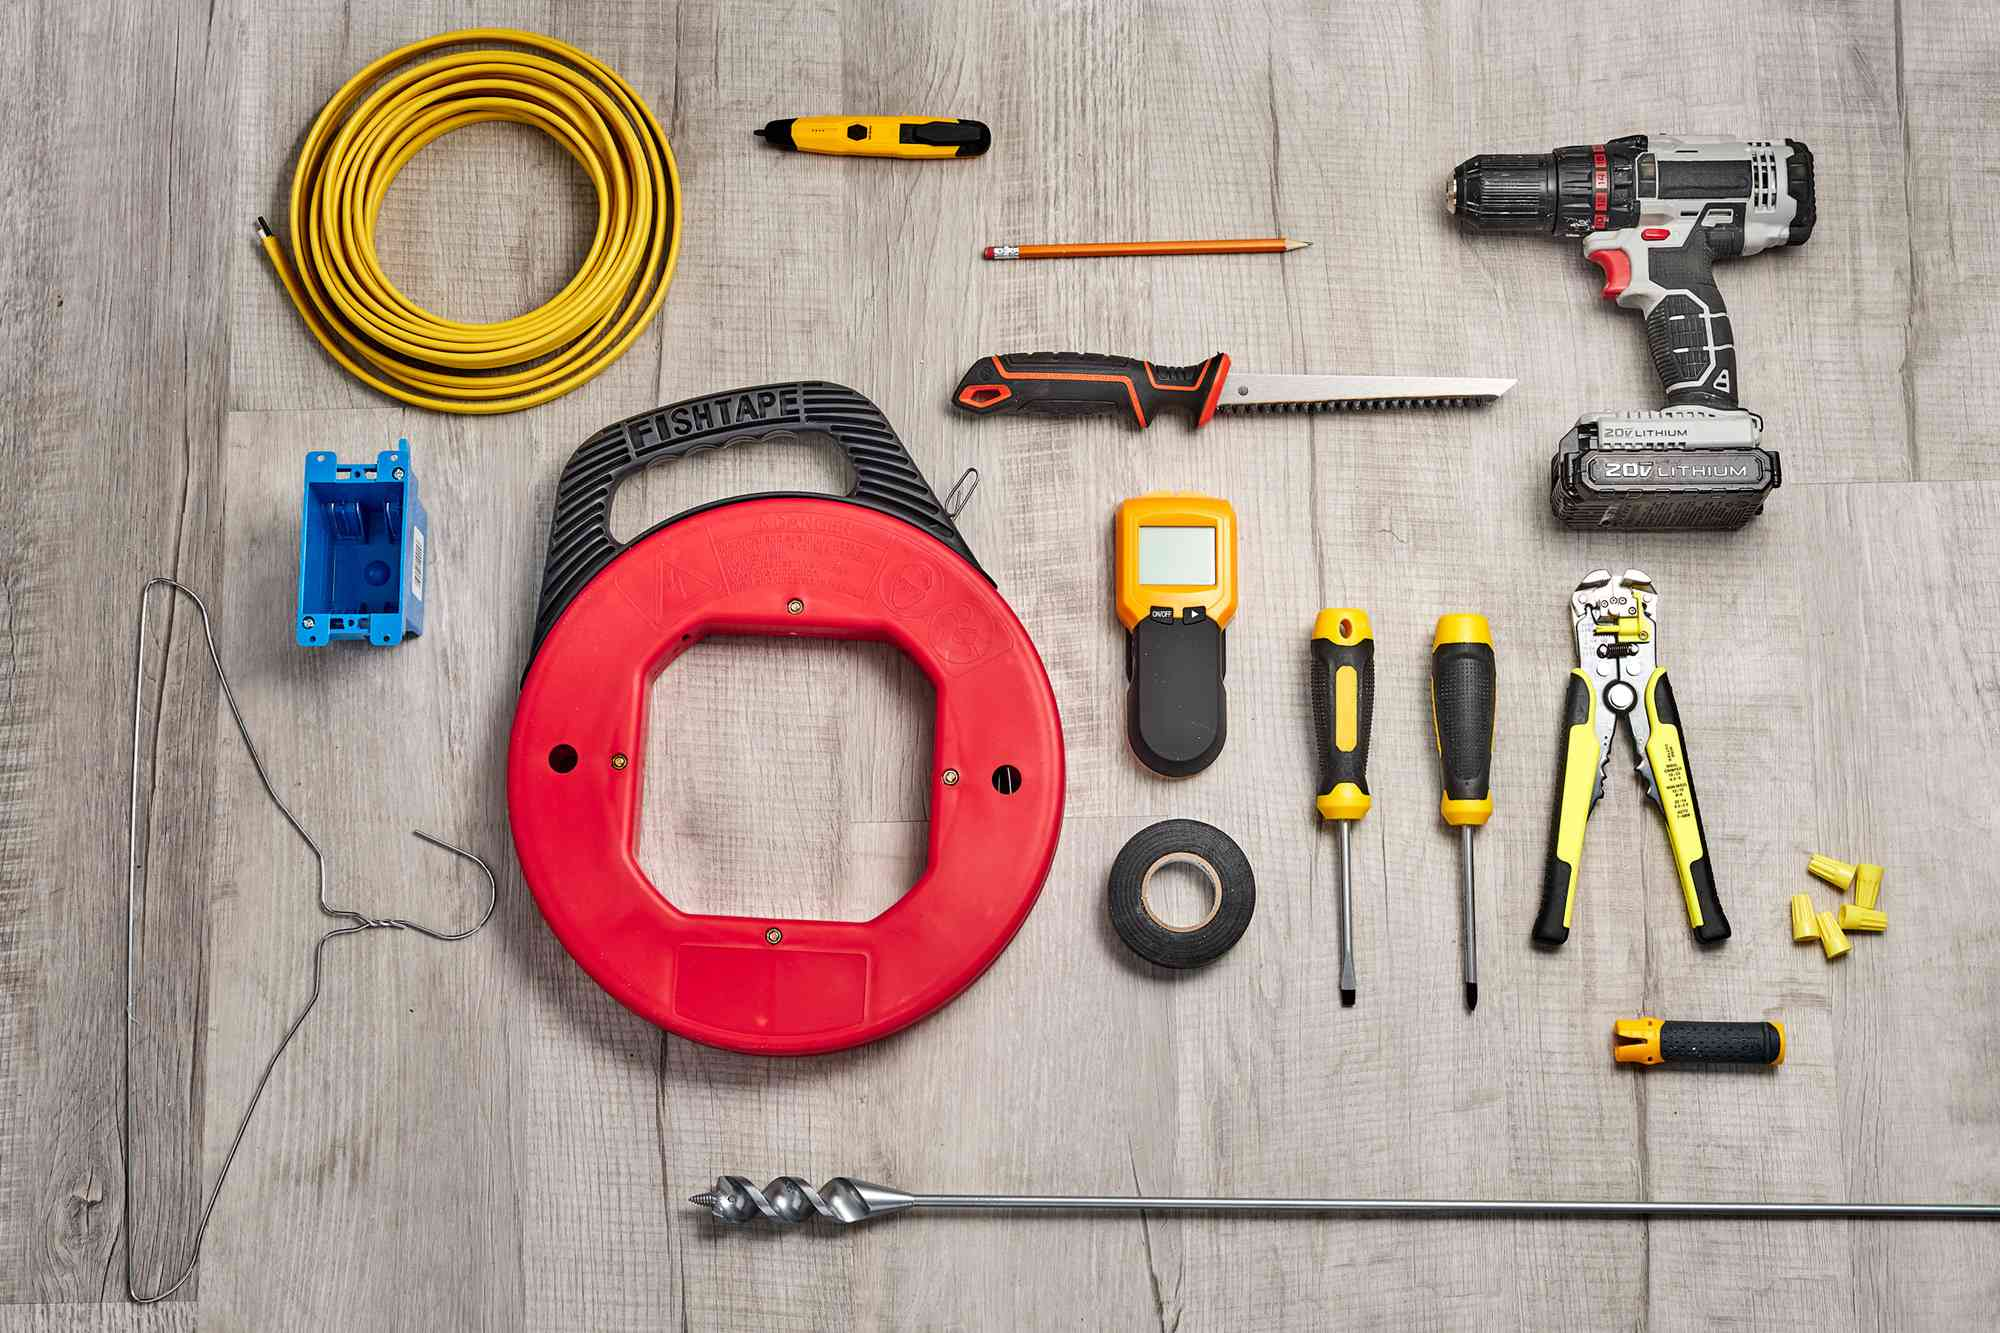 Materials and tools to run electrical wires through a finished wall